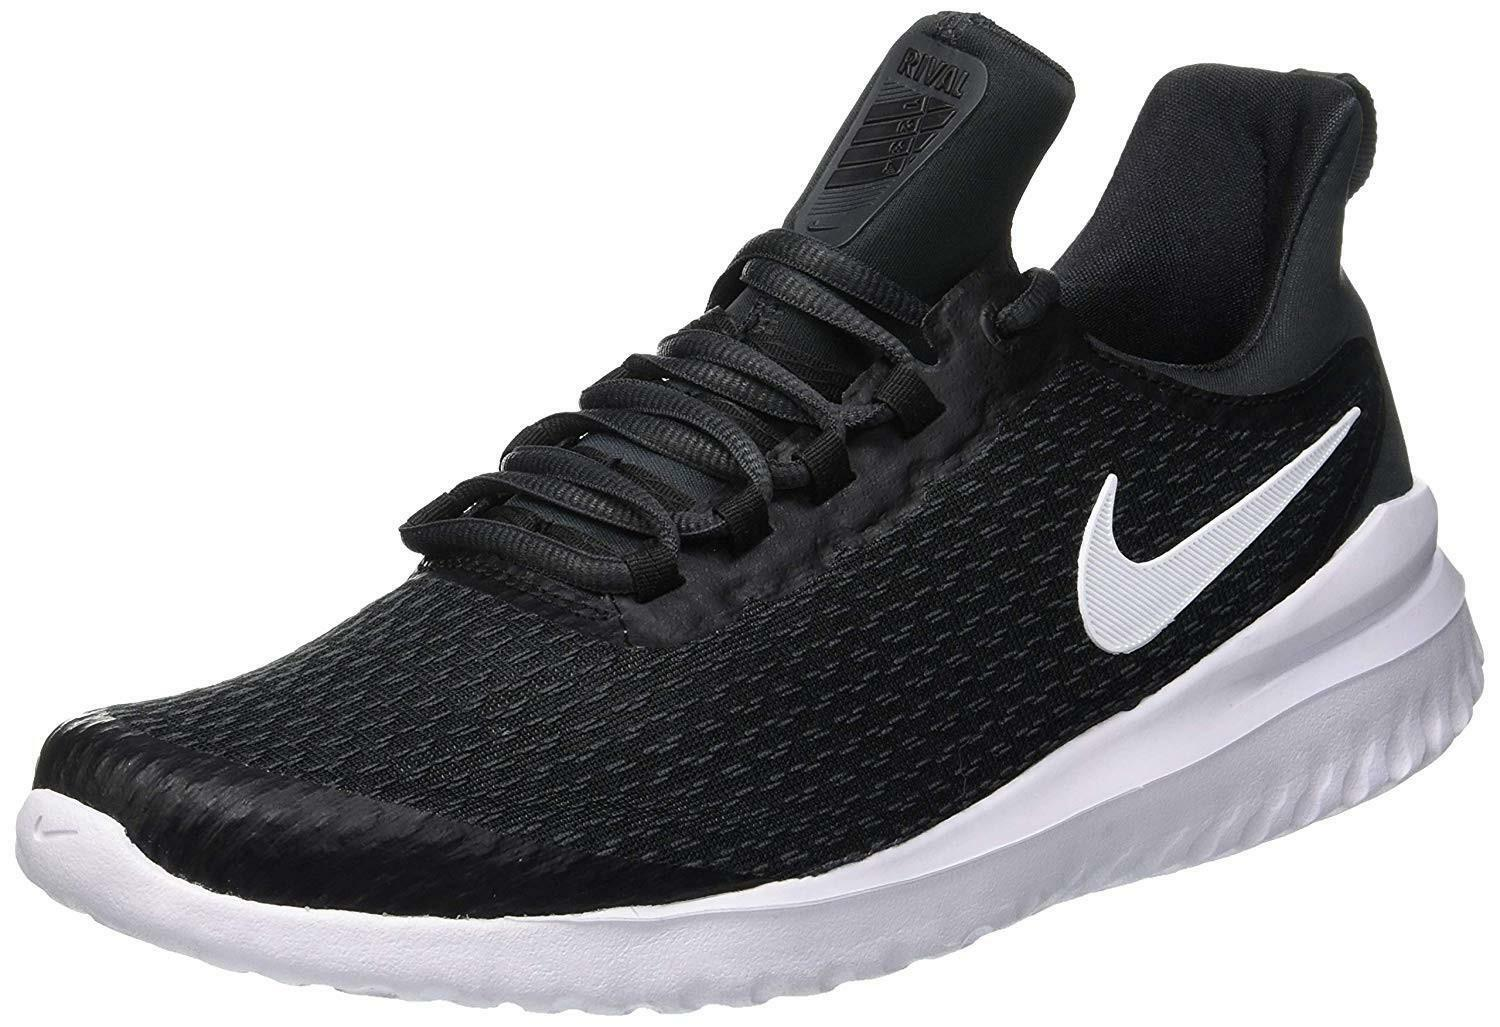 NIKE RENEW RIVAL zapatos SPORTIVE hombres NERE AA7400001